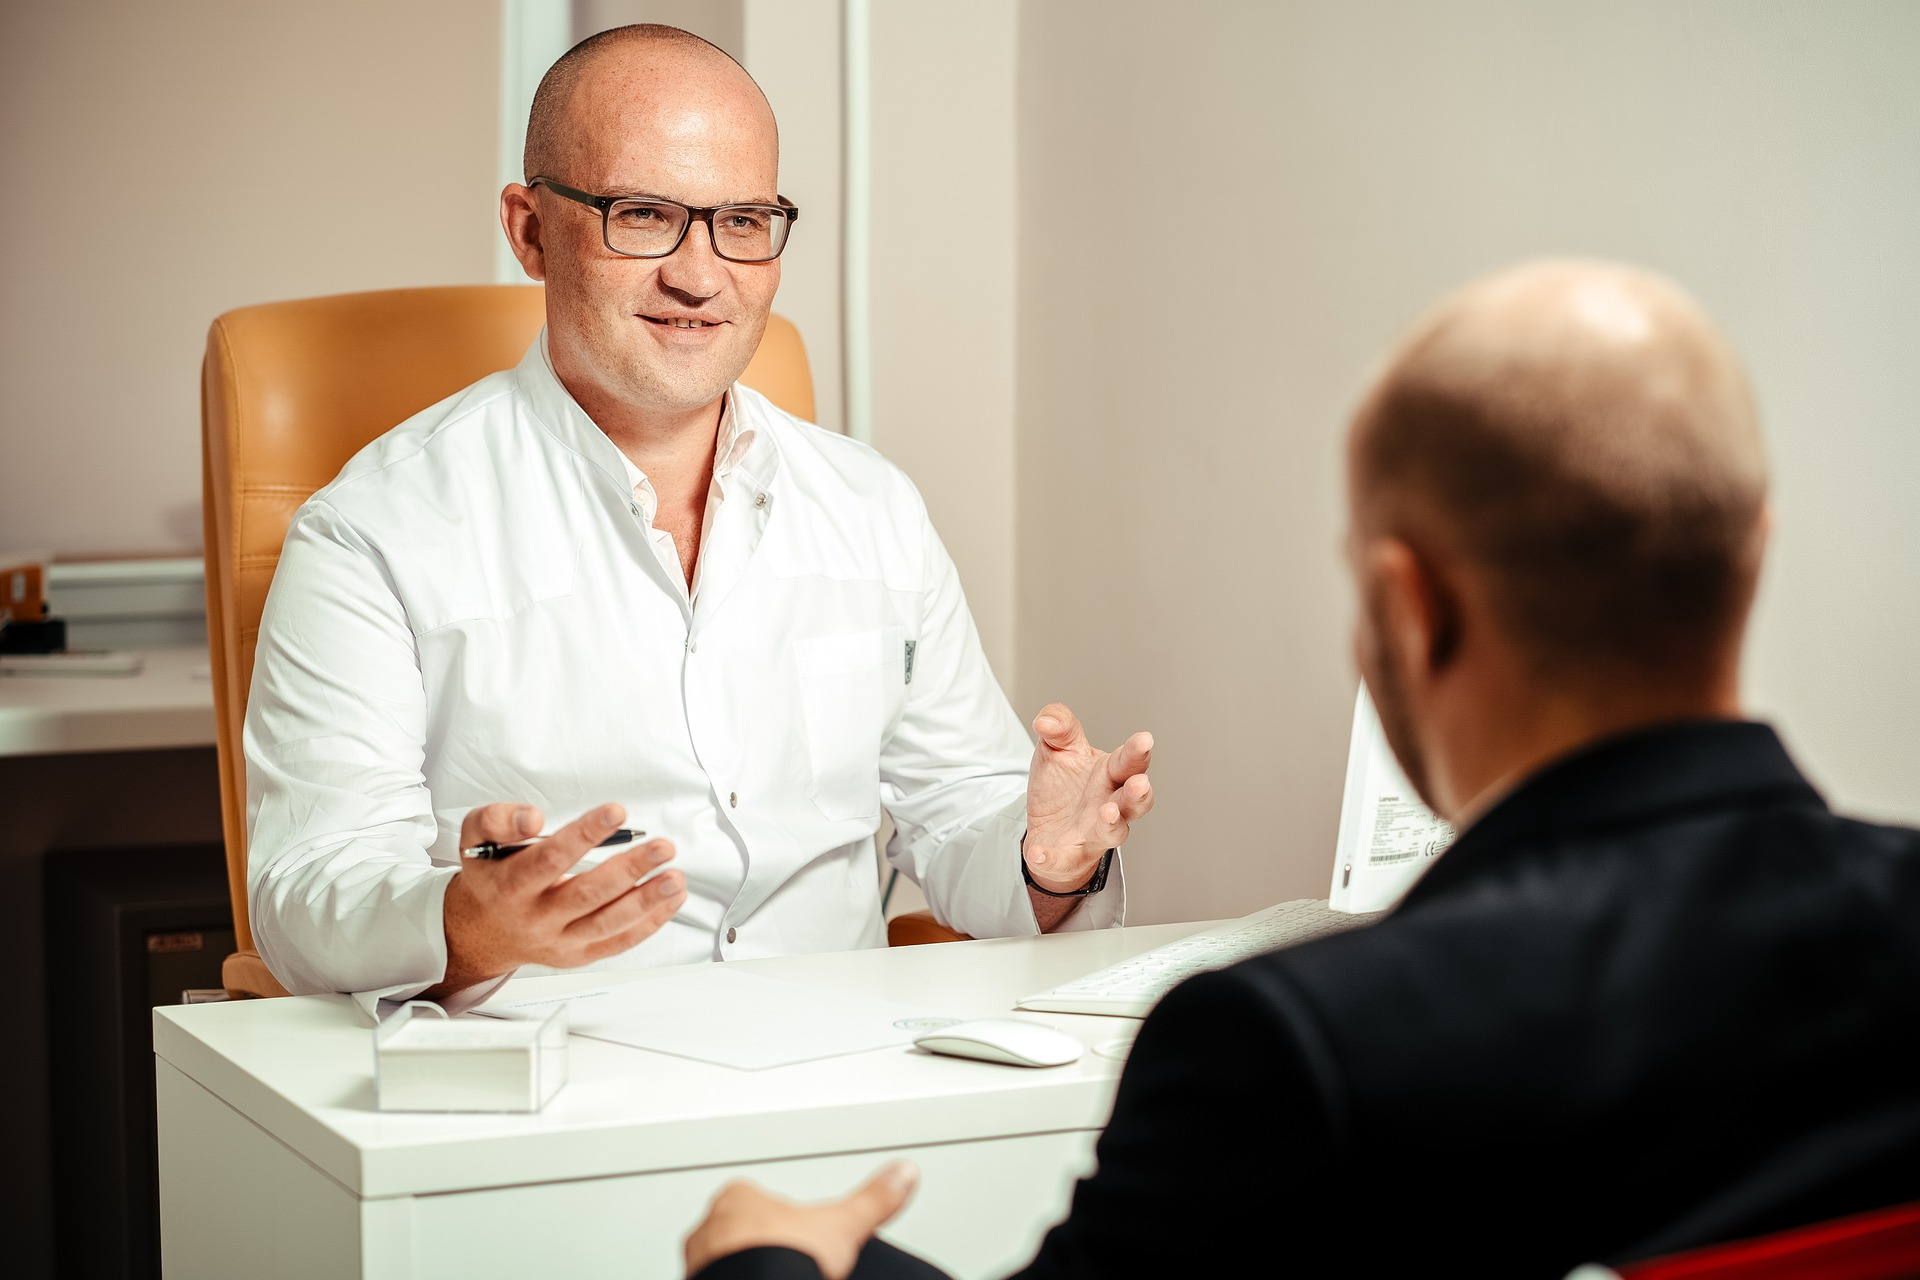 Doctor sitting at desk for consultation with client